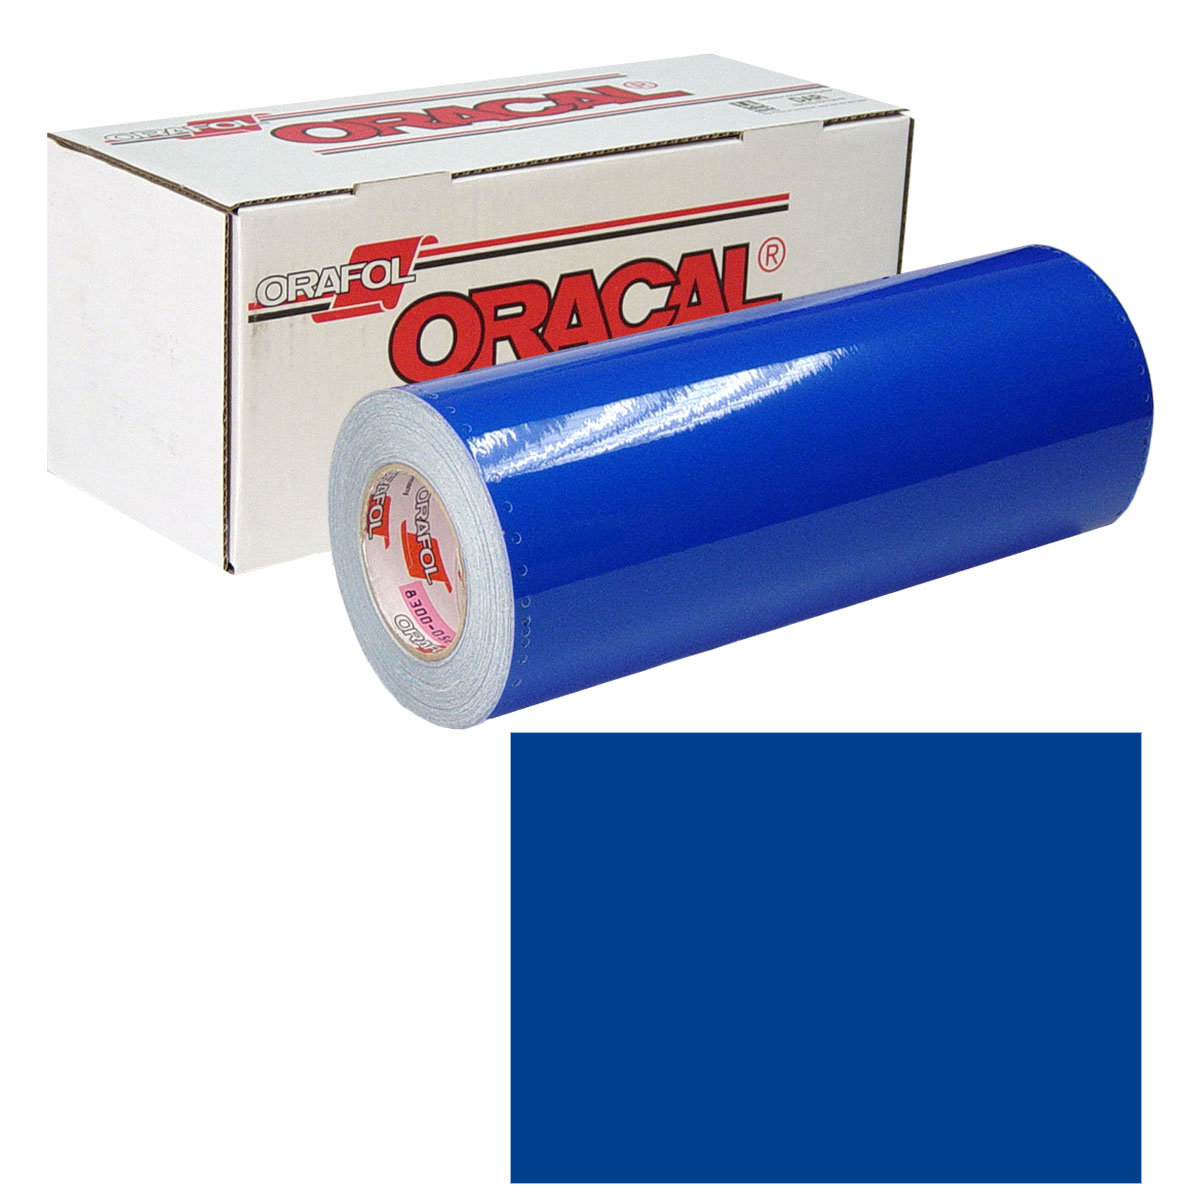 ORACAL 631 Unp 48in X 50yd 057 Traffic Blue